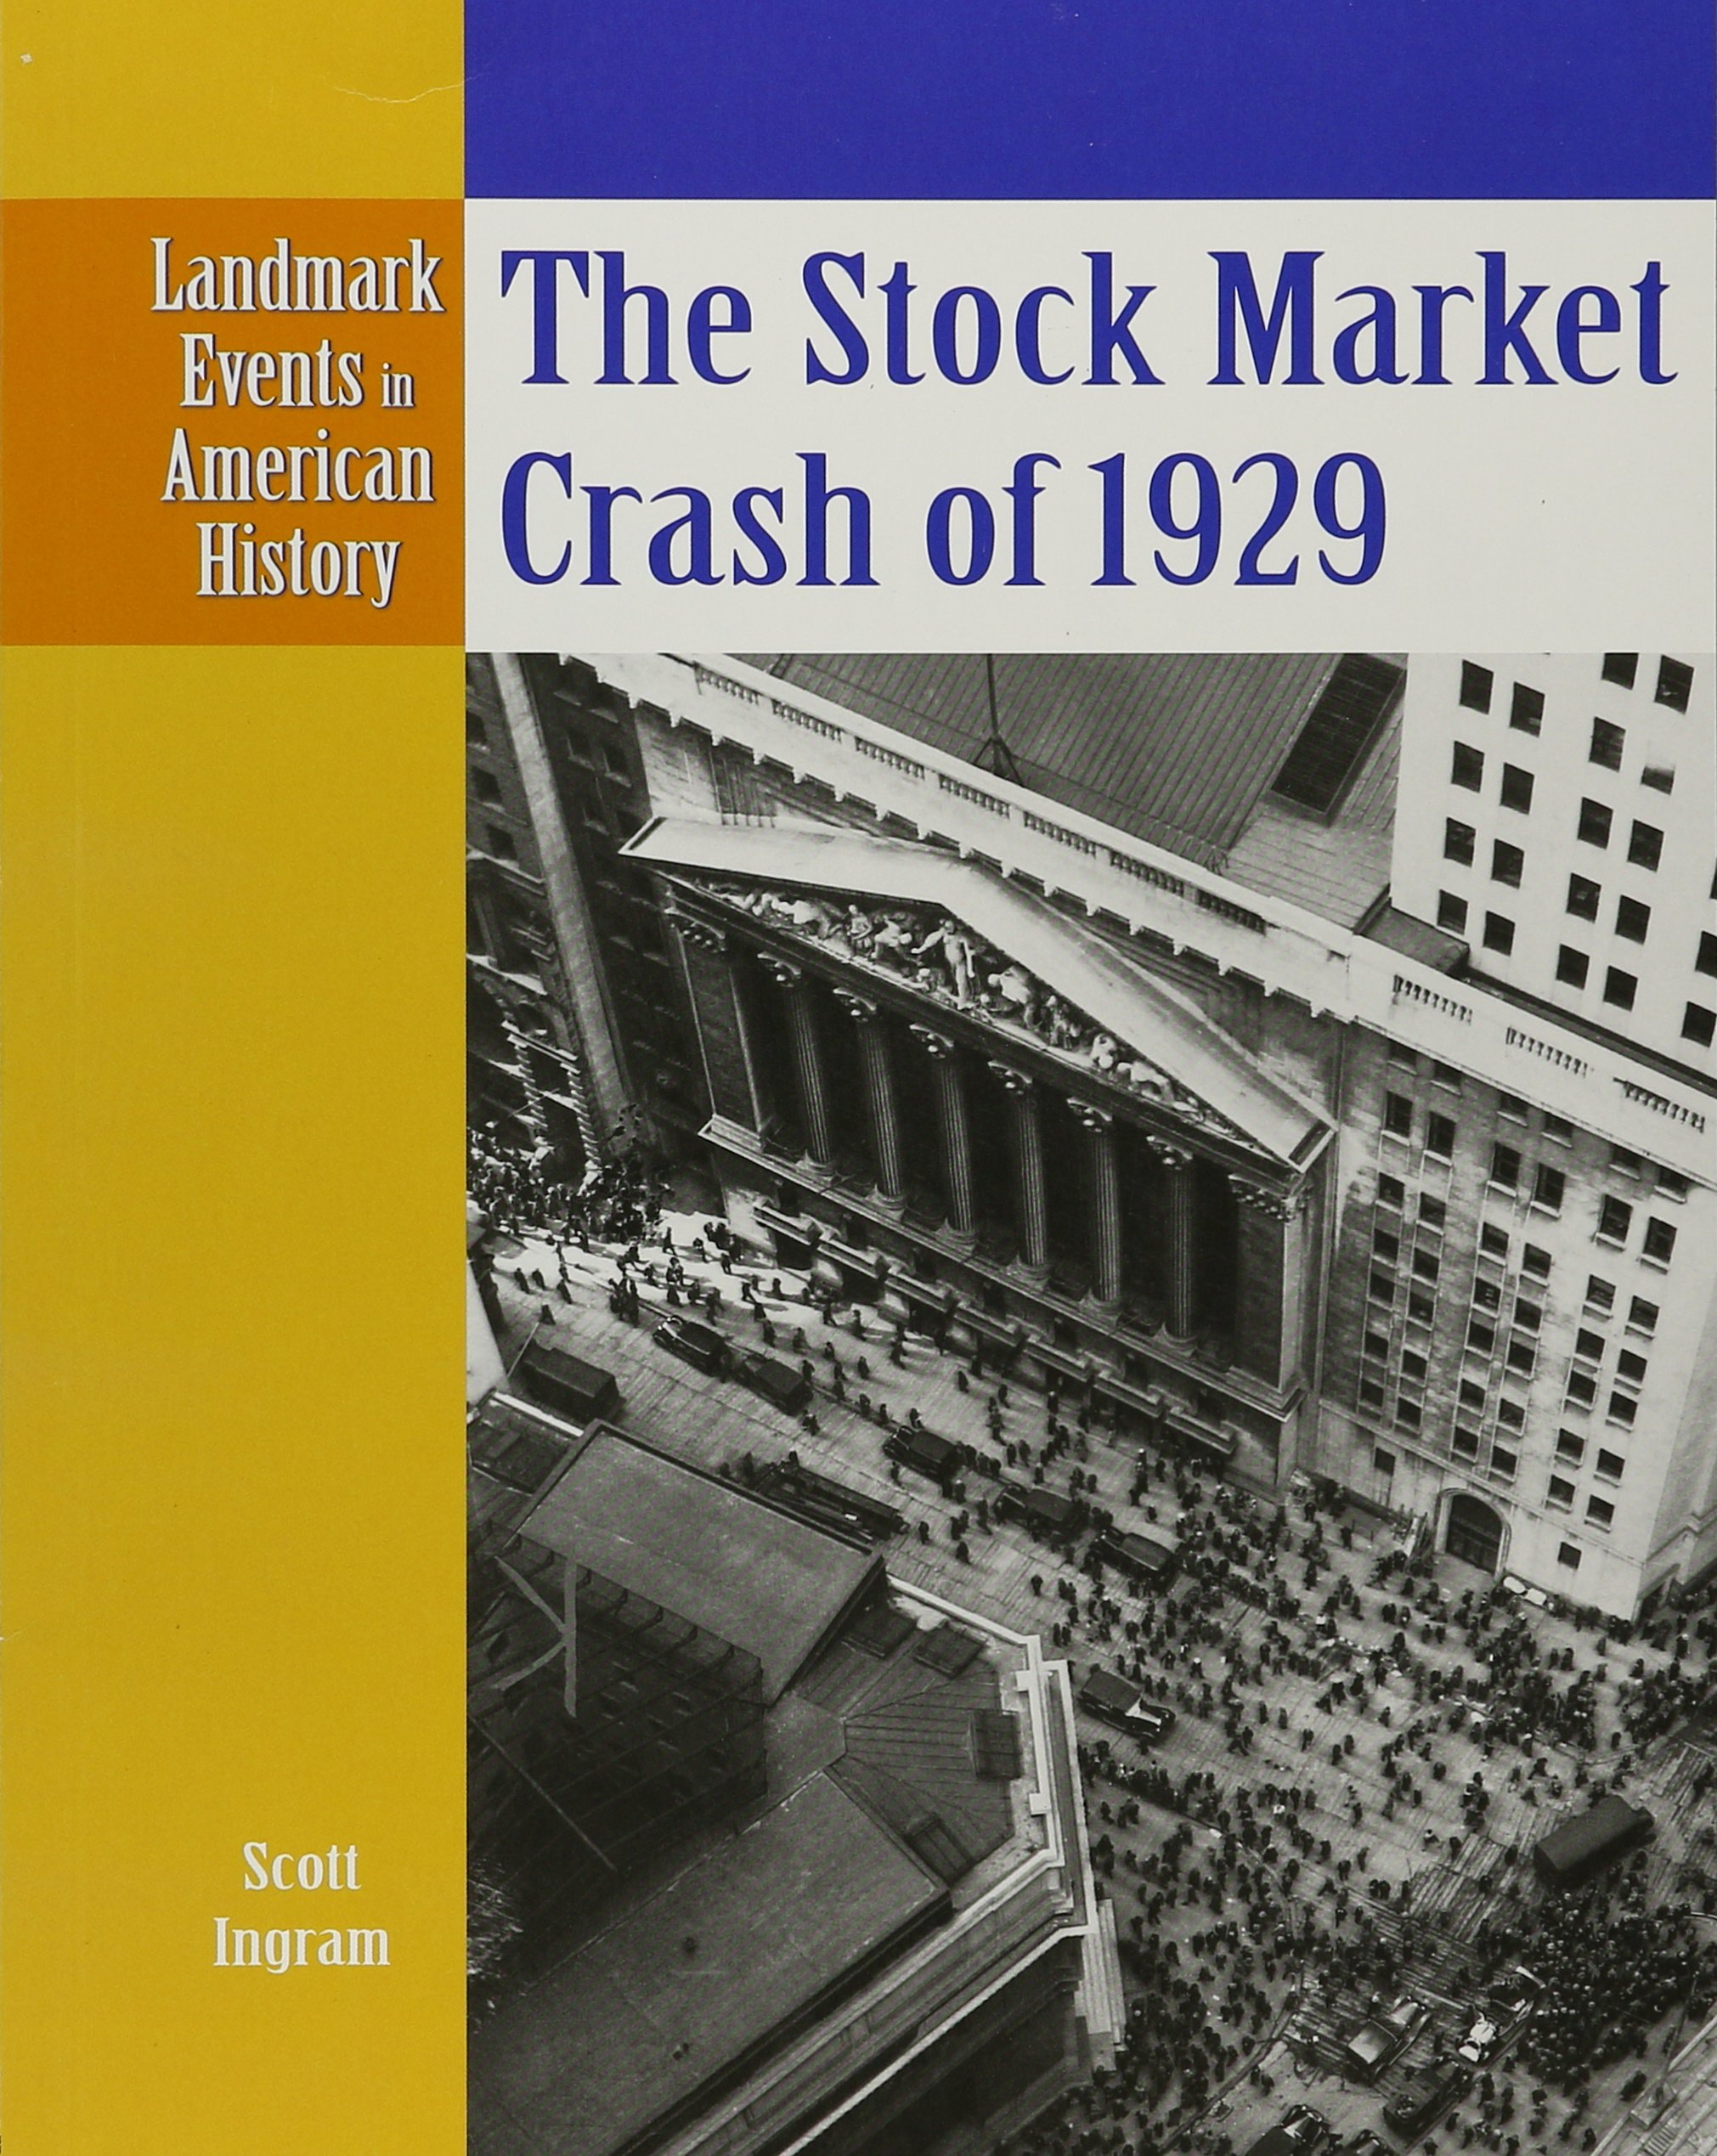 Download The Stock Market Crash of 1929 (Landmark Events in American History) pdf